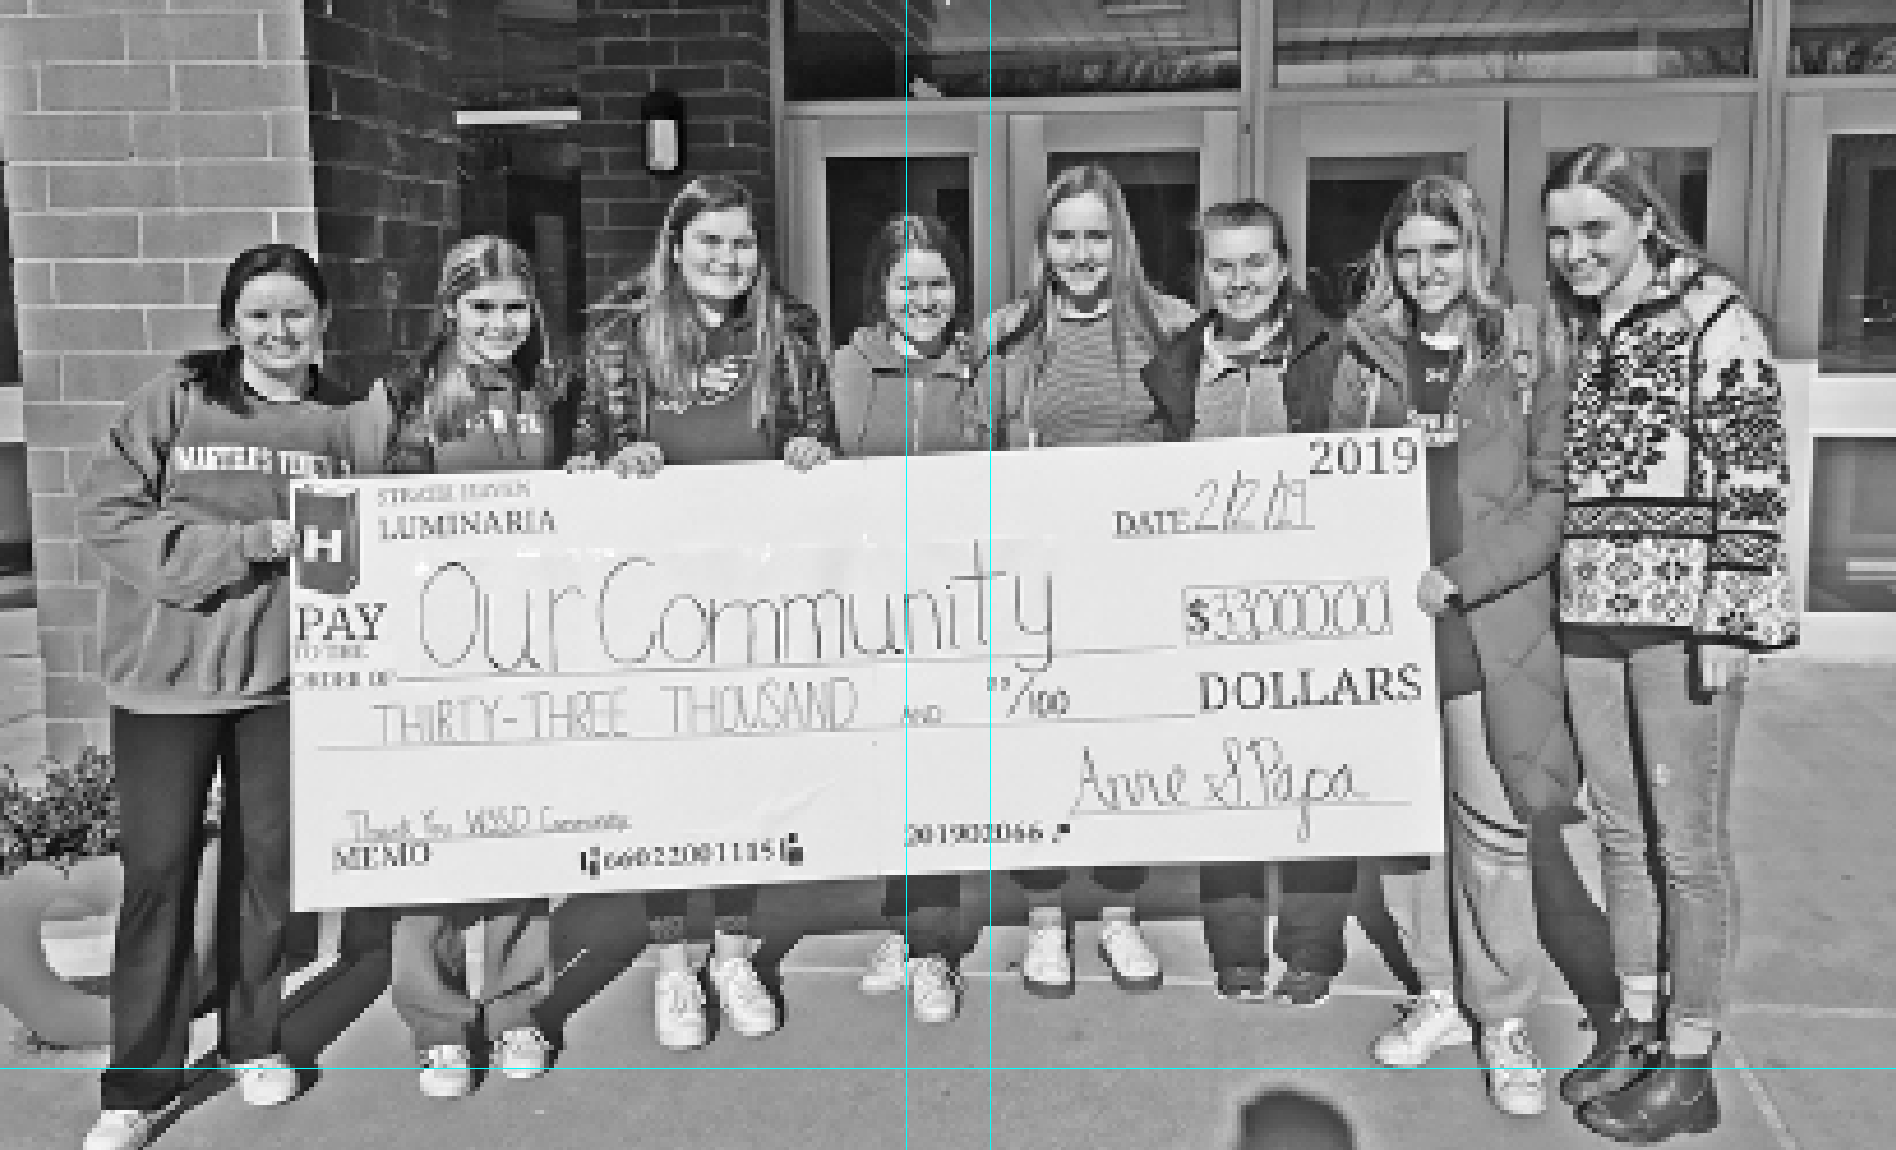 The Strath Haven Luminaria Club raised $33,000 for ABC-Strath Haven and access to community extracurriculars. Student leaders are (left to right) Lizzy Healy, Sarah McAndrews, Kate McAndrews, Emma Forbes, Gillian Brennan, Erin O'Brien, Bella Hunter, Gretchen Clauss (missing from picture: Sophie Haase, Greta Hiehle, Lydia Elia, Maeve Clark).